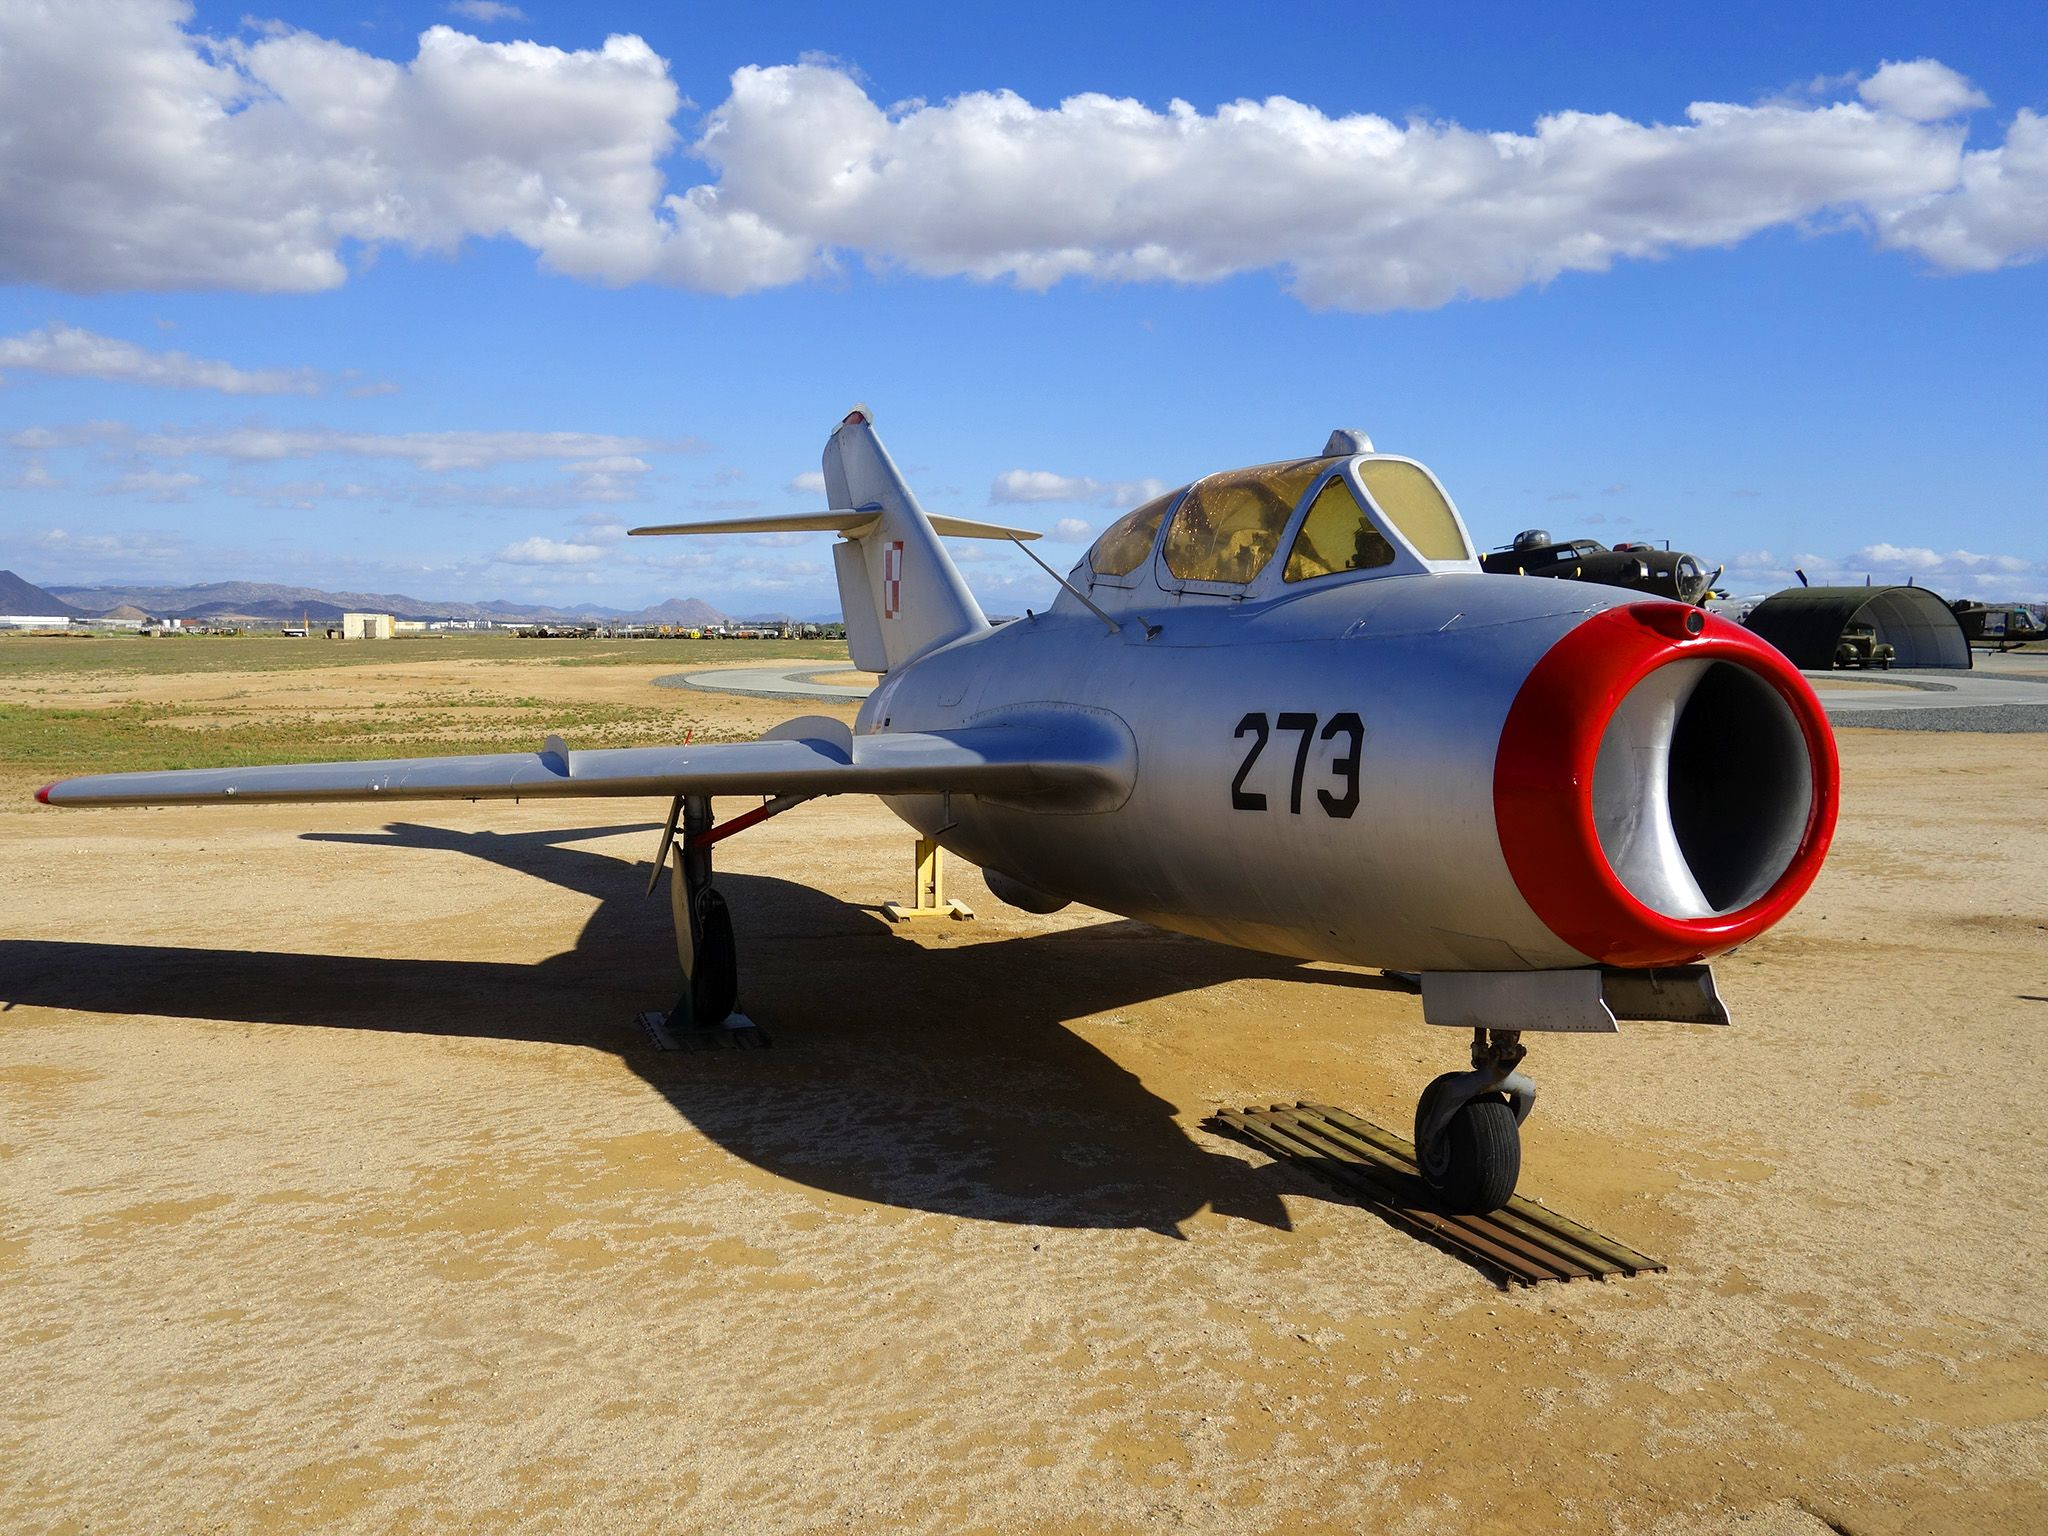 Riverside, Californie, USA: MiG-17 est un avion de chasse supersonique crée dans la Zone 51. Cet... [Photo of the day - octobre 2014]